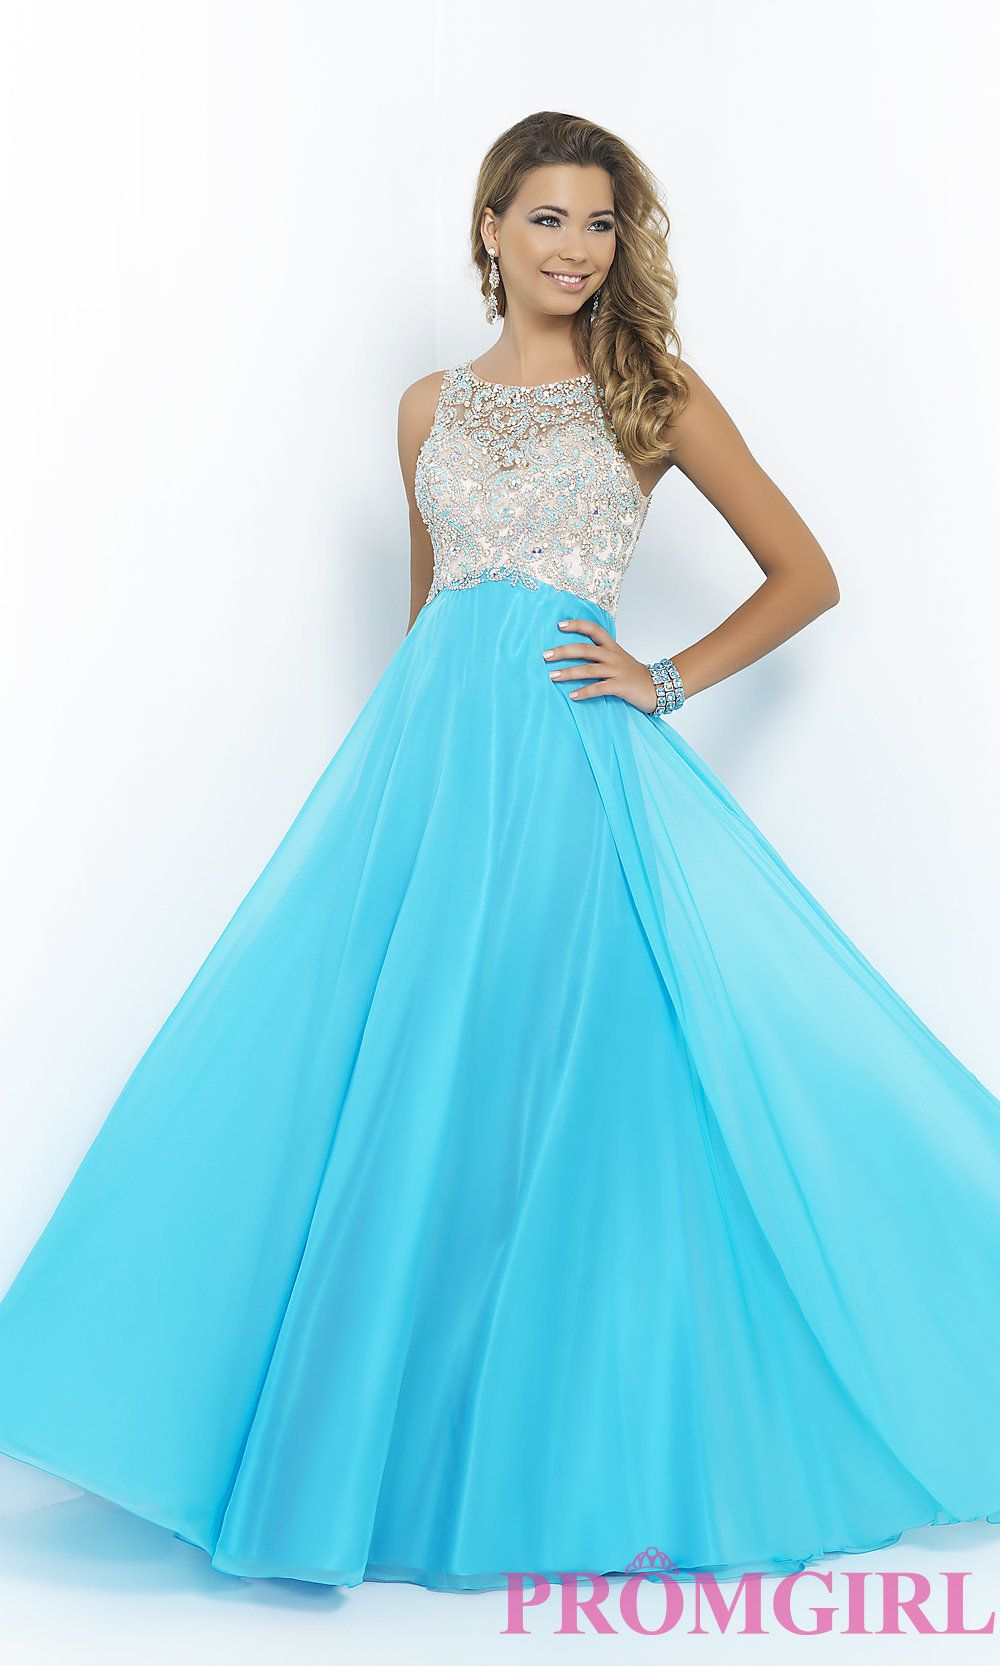 Image of High Neck Beaded Prom Gown by Blush 9917 Style: BL-9917 ...